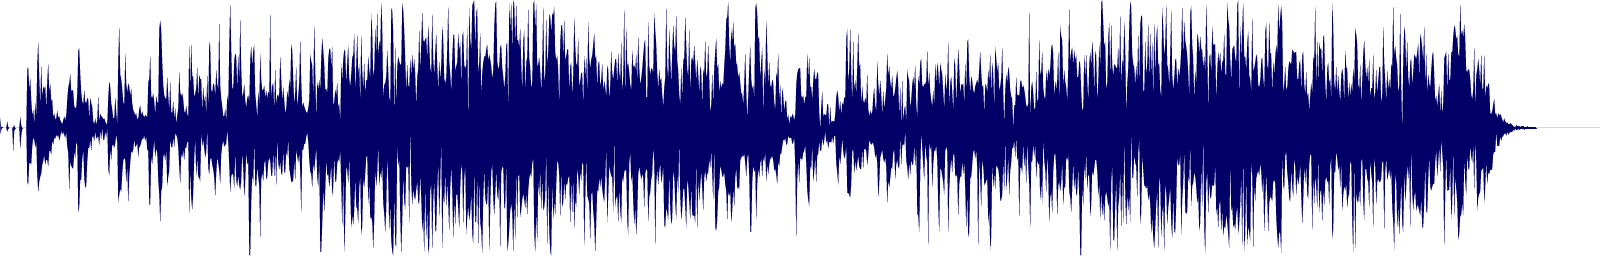 waveform of track #136388